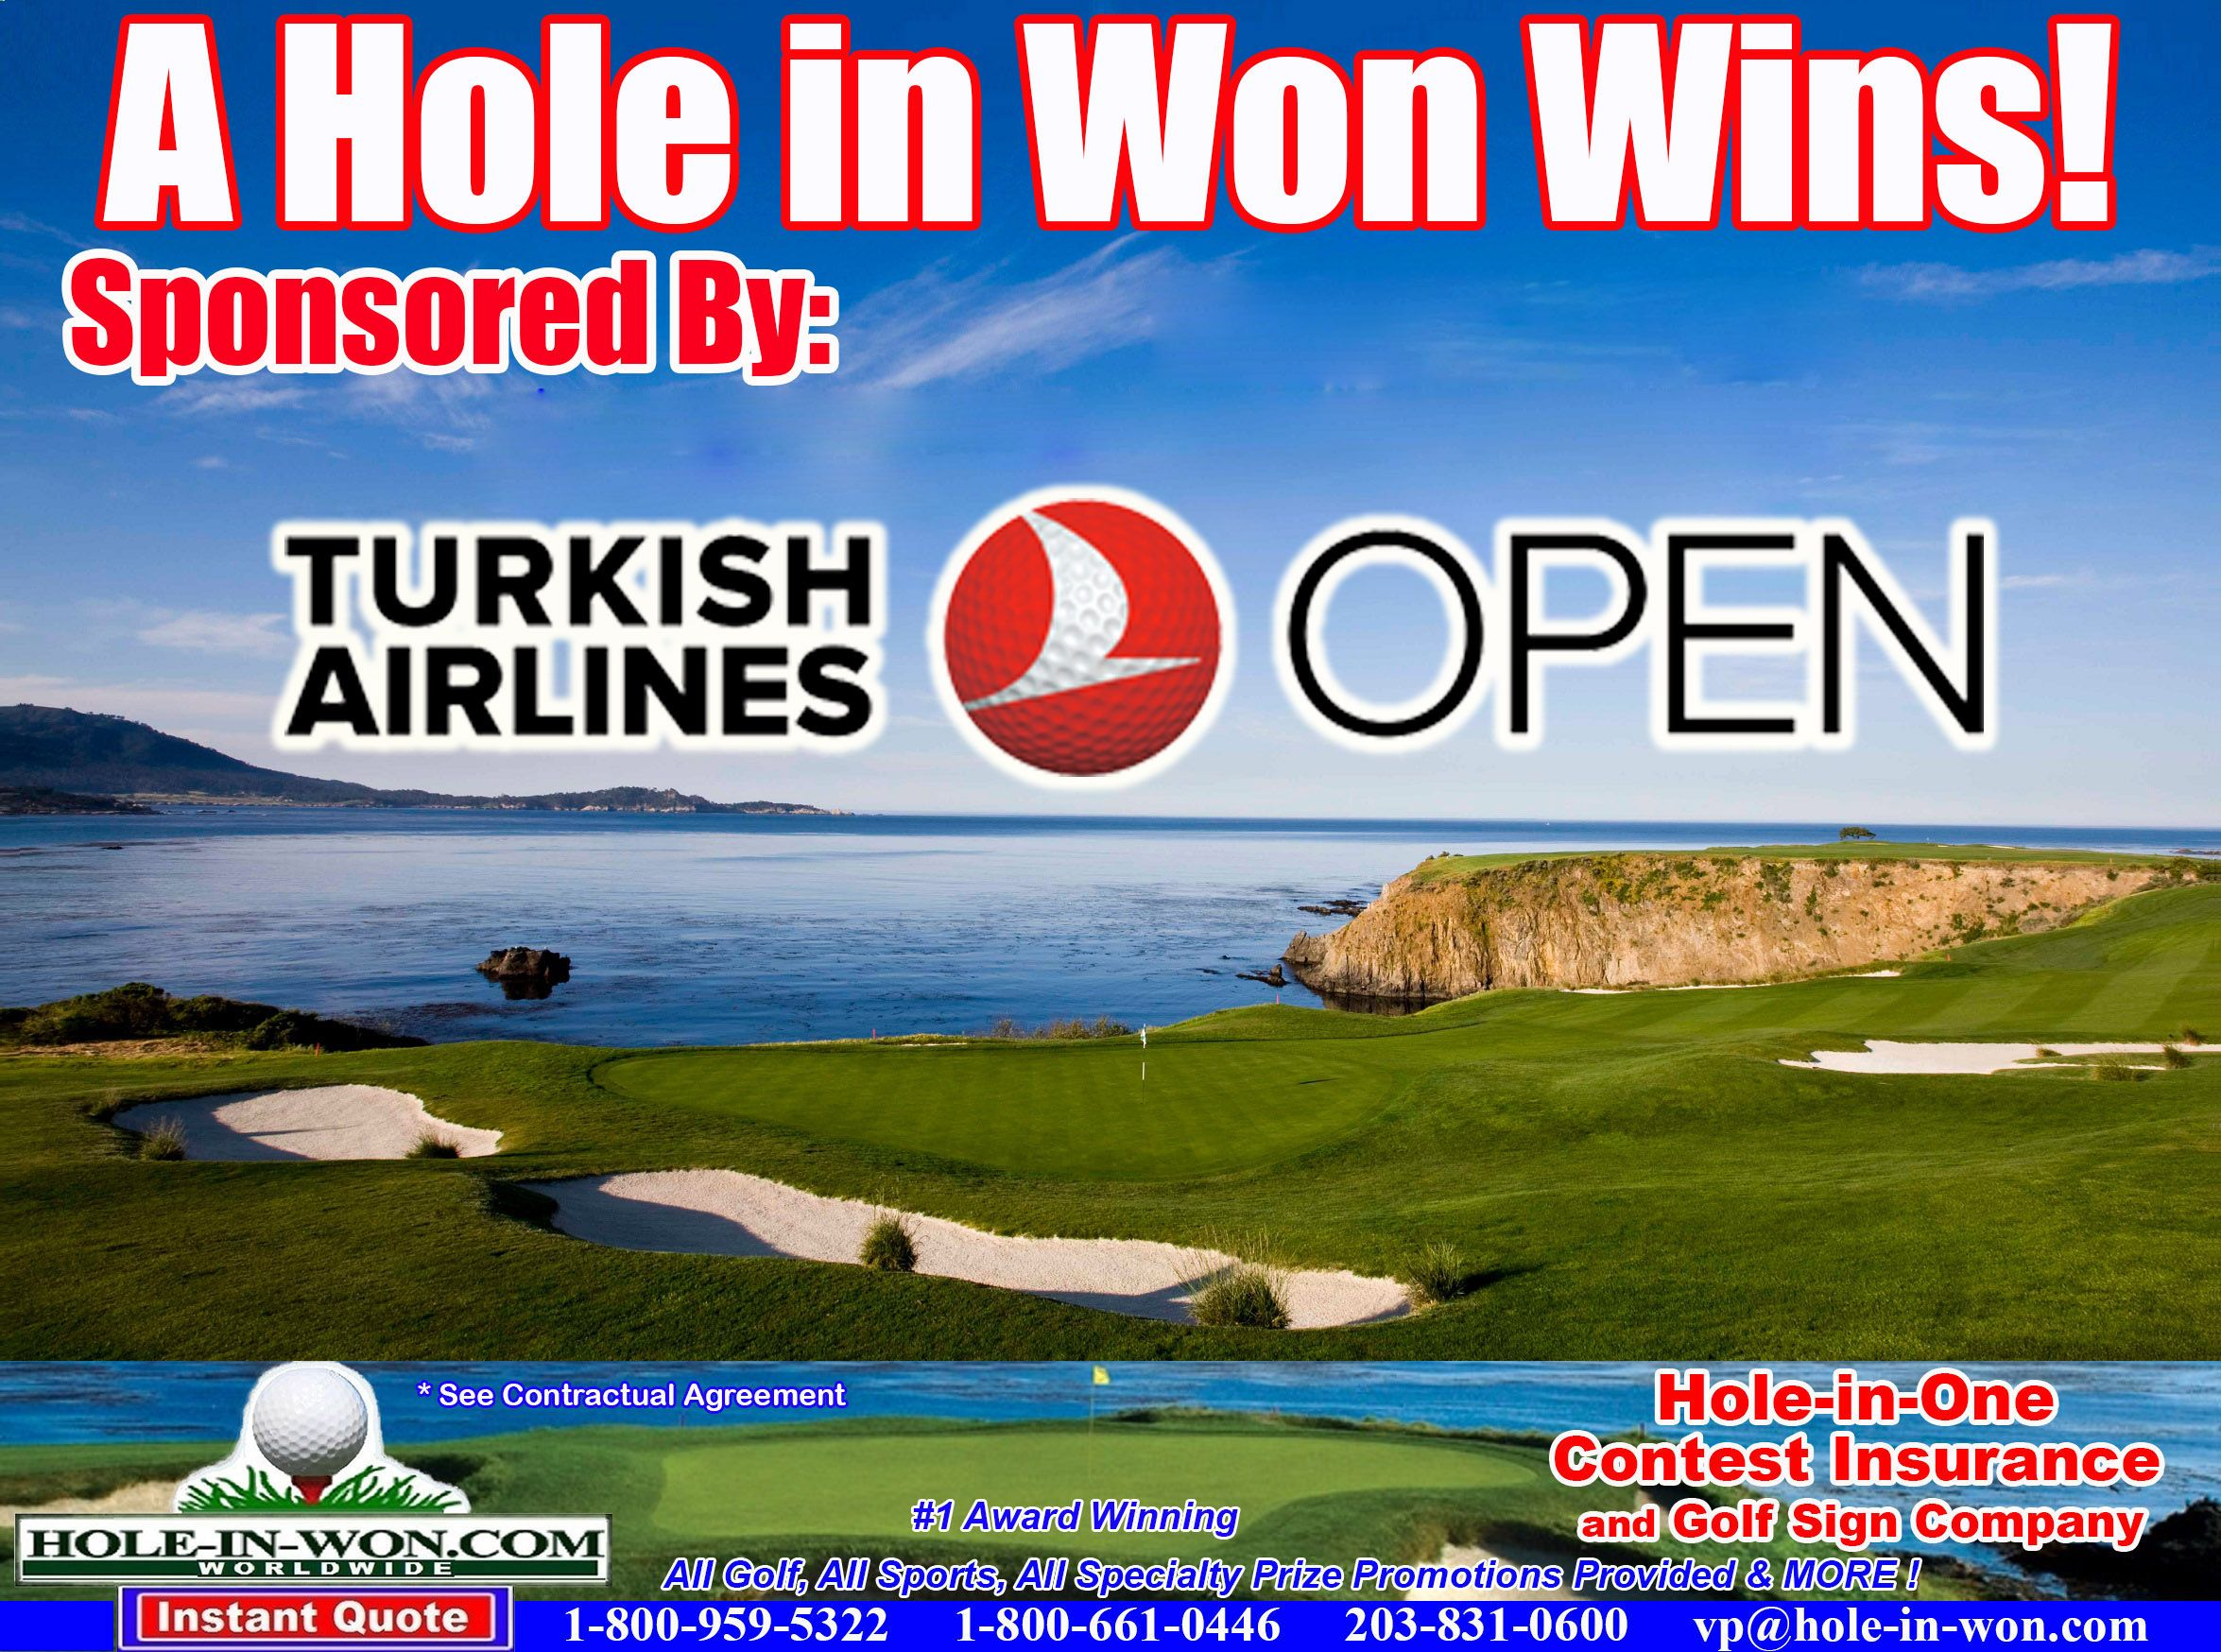 Worldwide Hole In One Insurance Putting Contests Vp Hole In Won